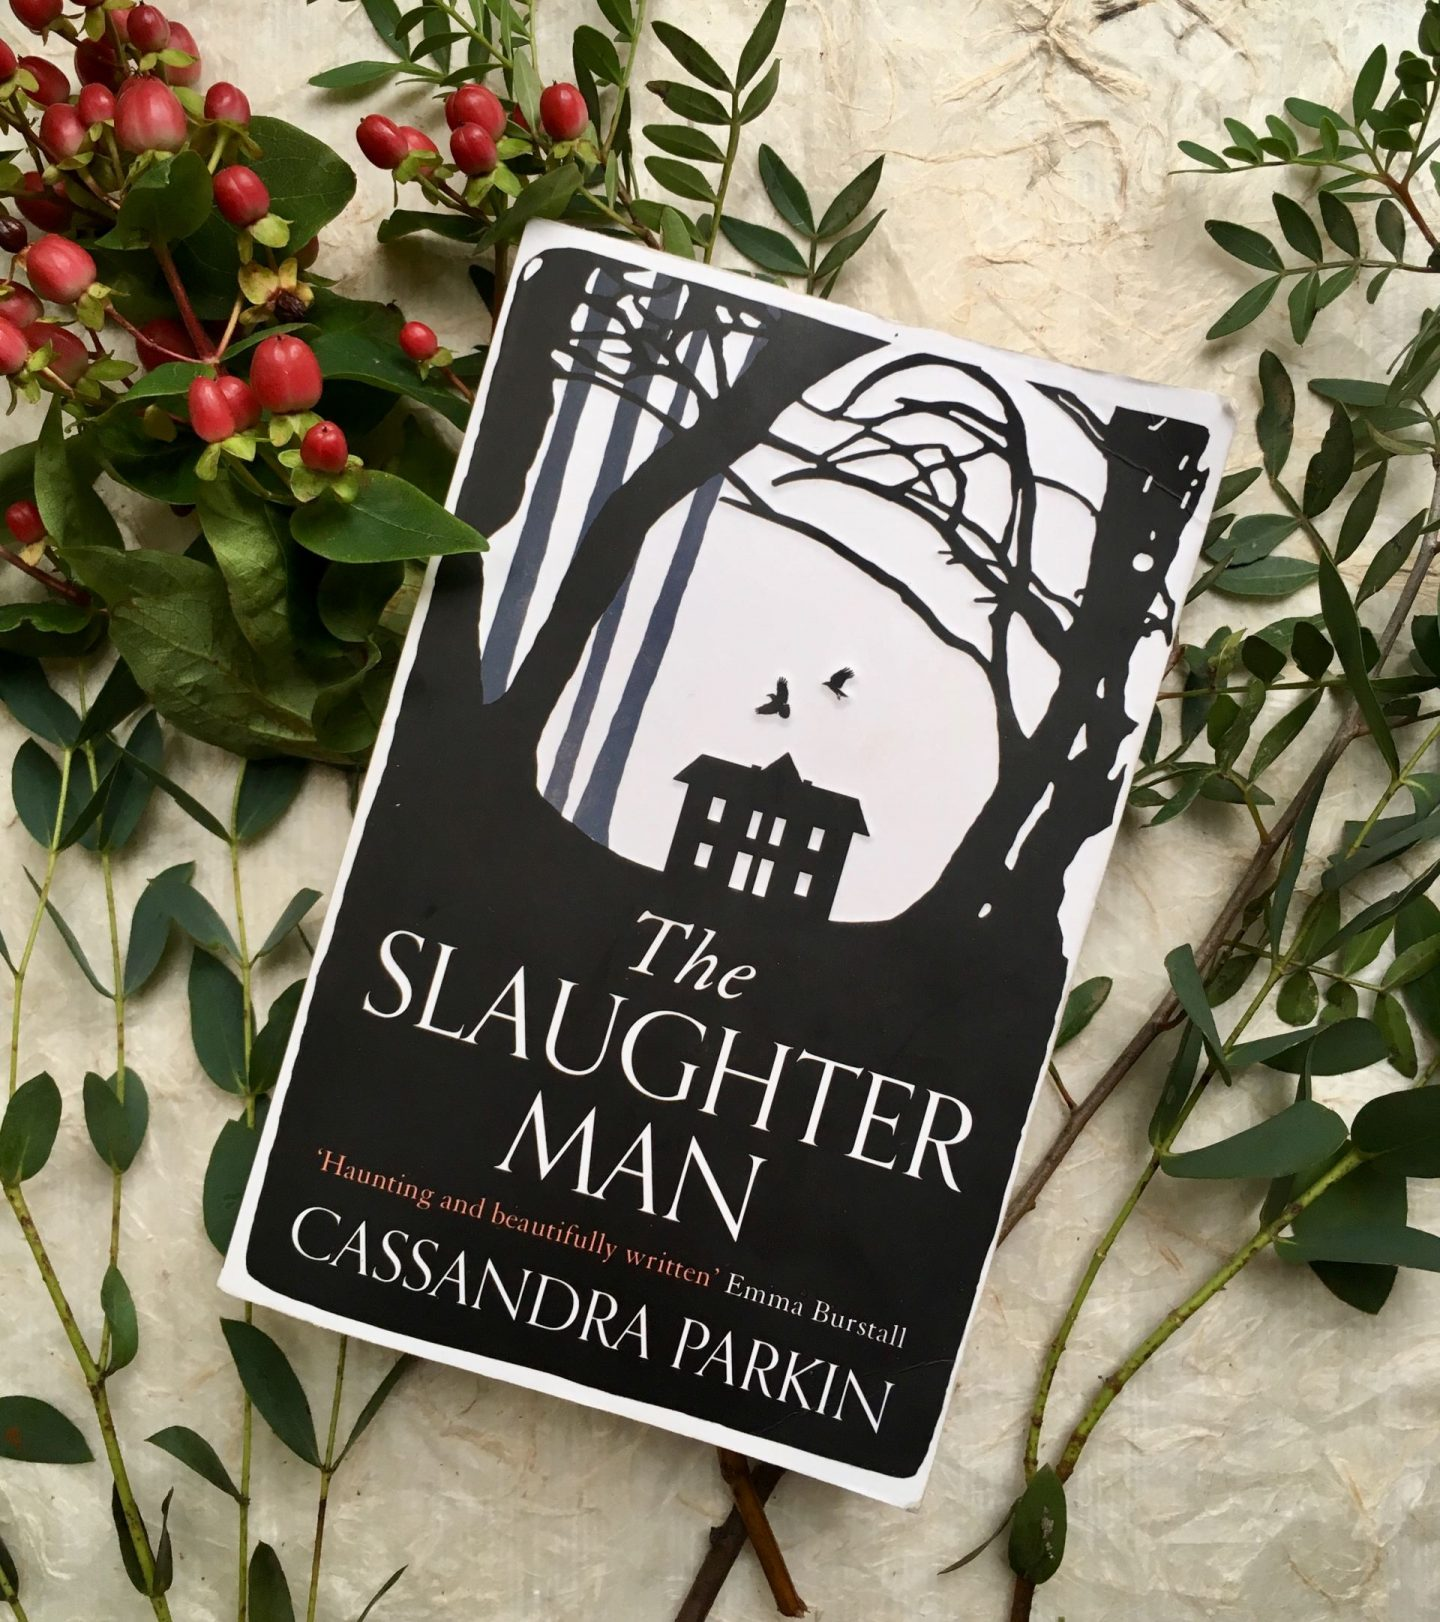 The Slaughter Man; a modern day fairy tale